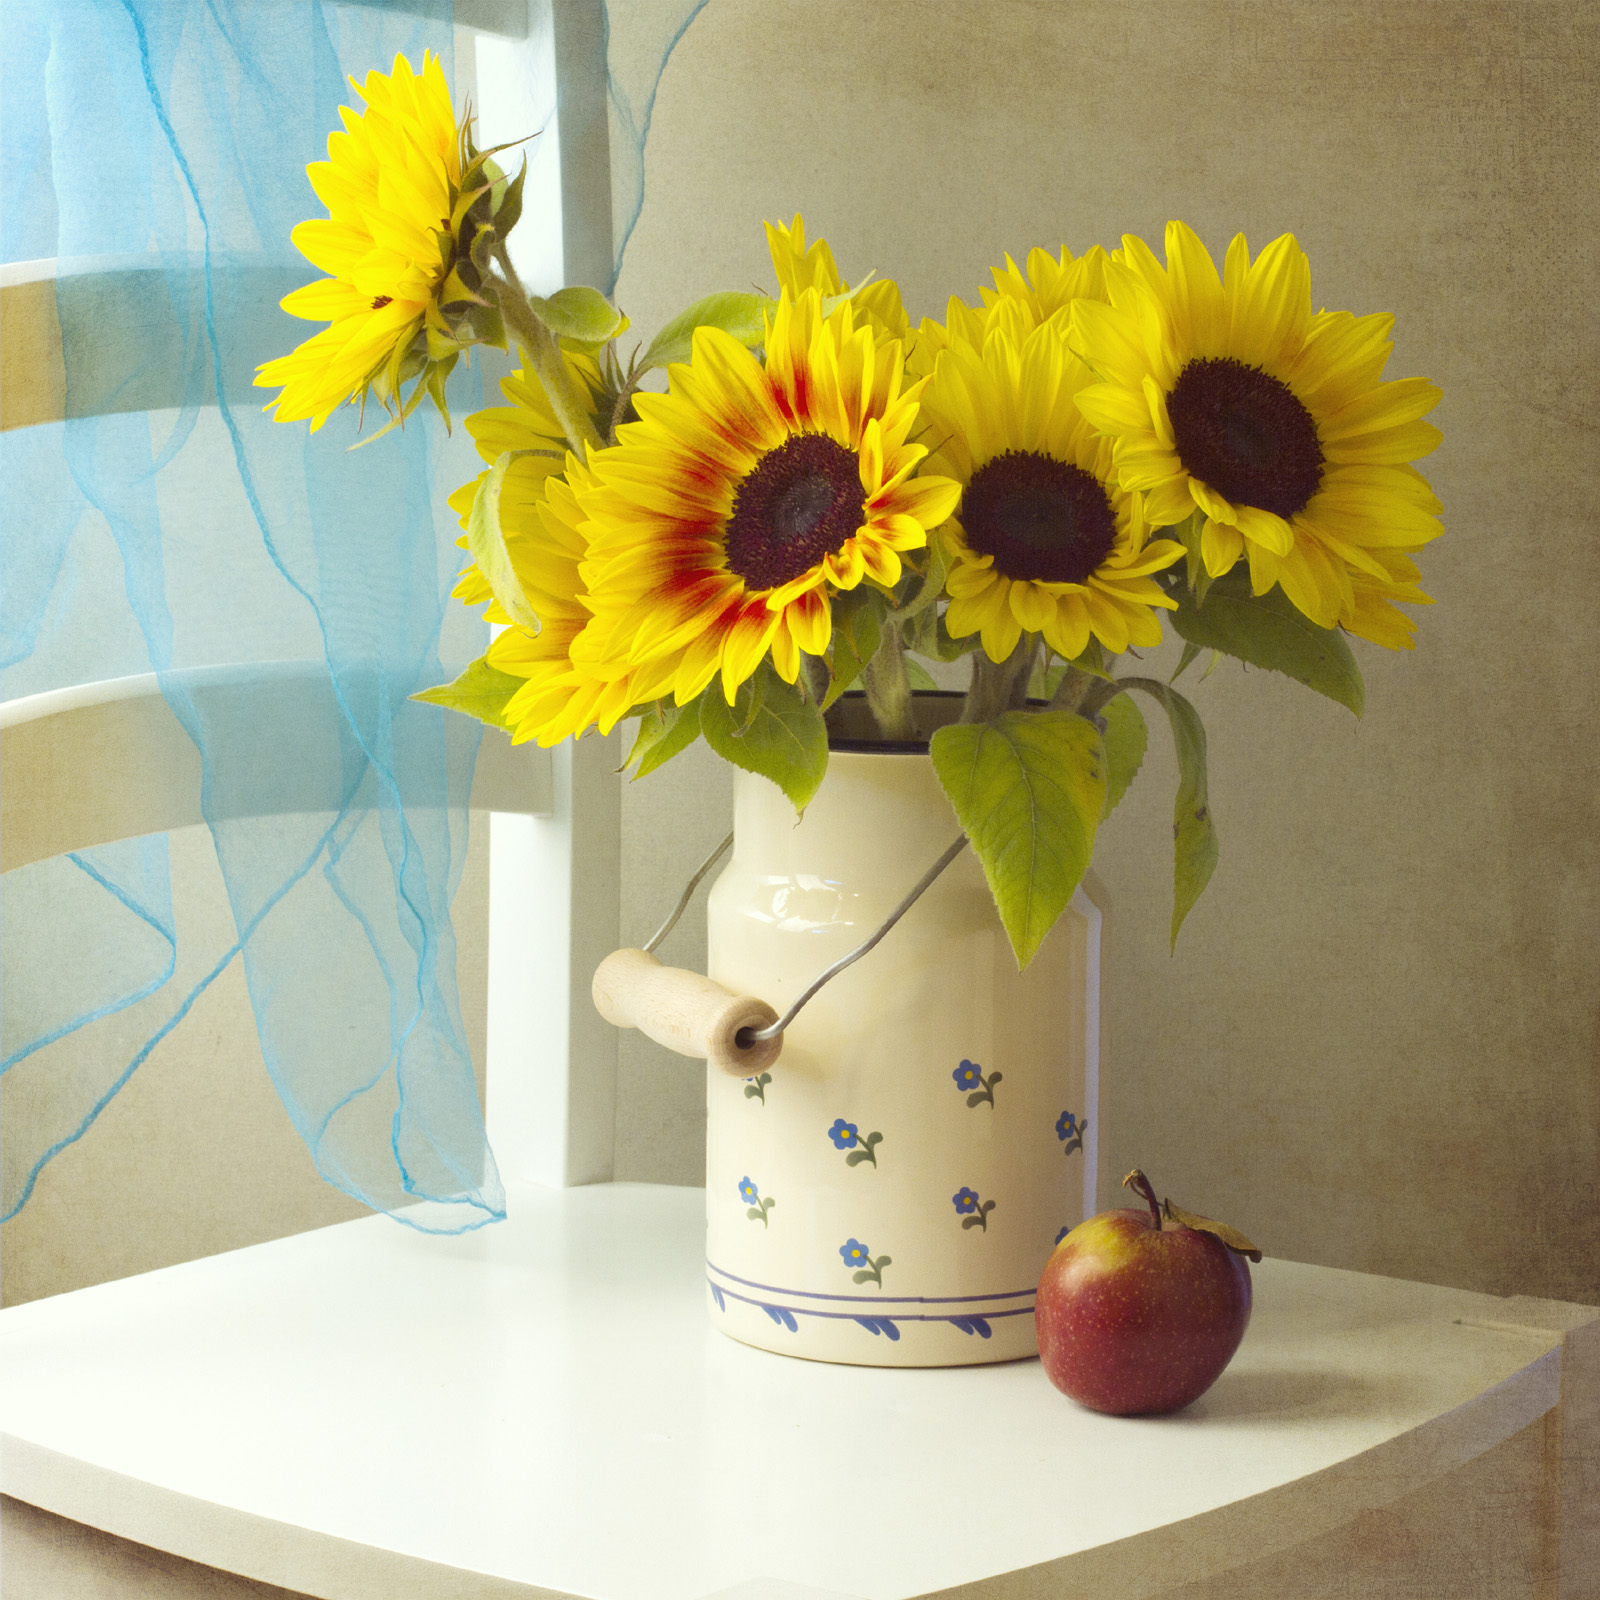 On the Chair's Sunflower vase 51823